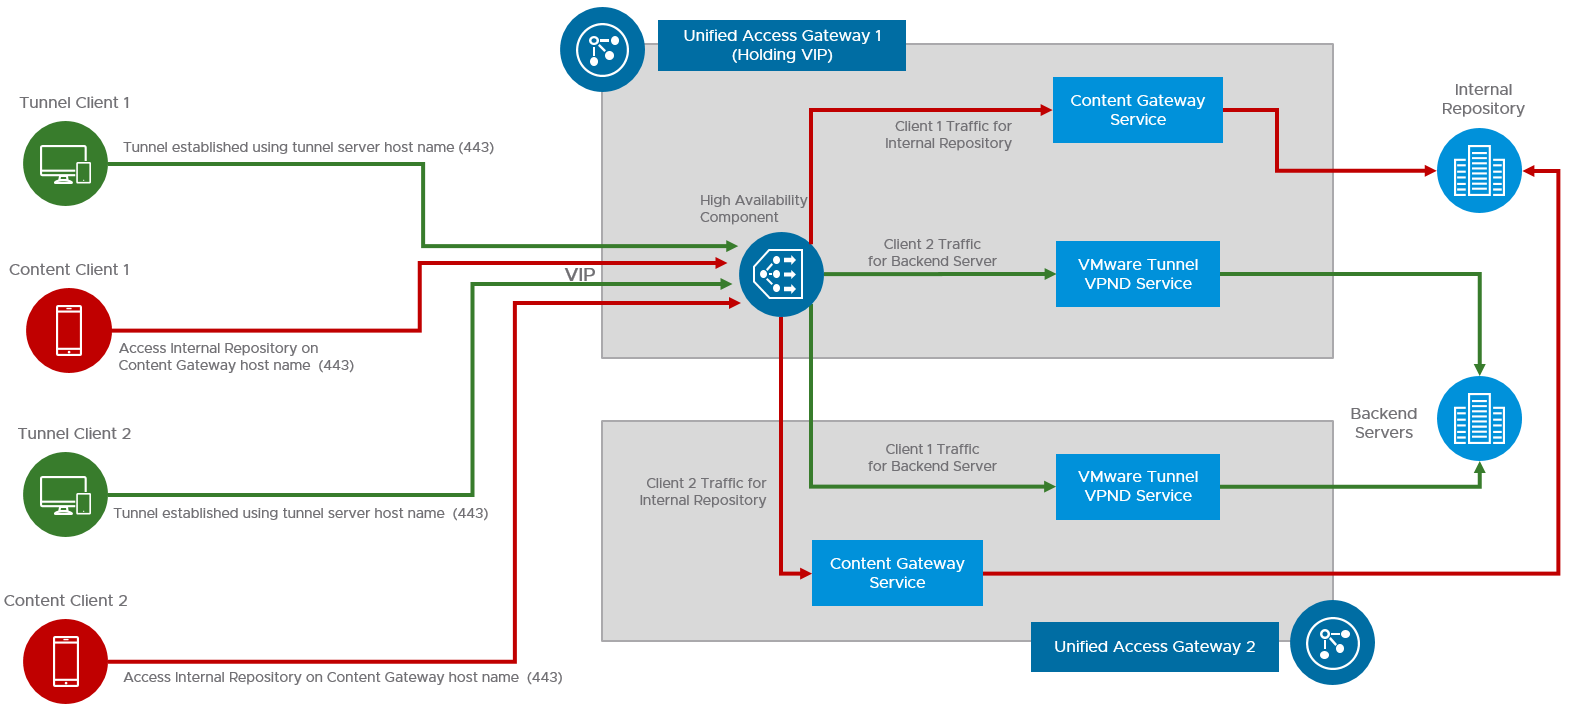 Unified Access Gateway HA Flow for VMware Tunnel and Content Gateway Edge Services